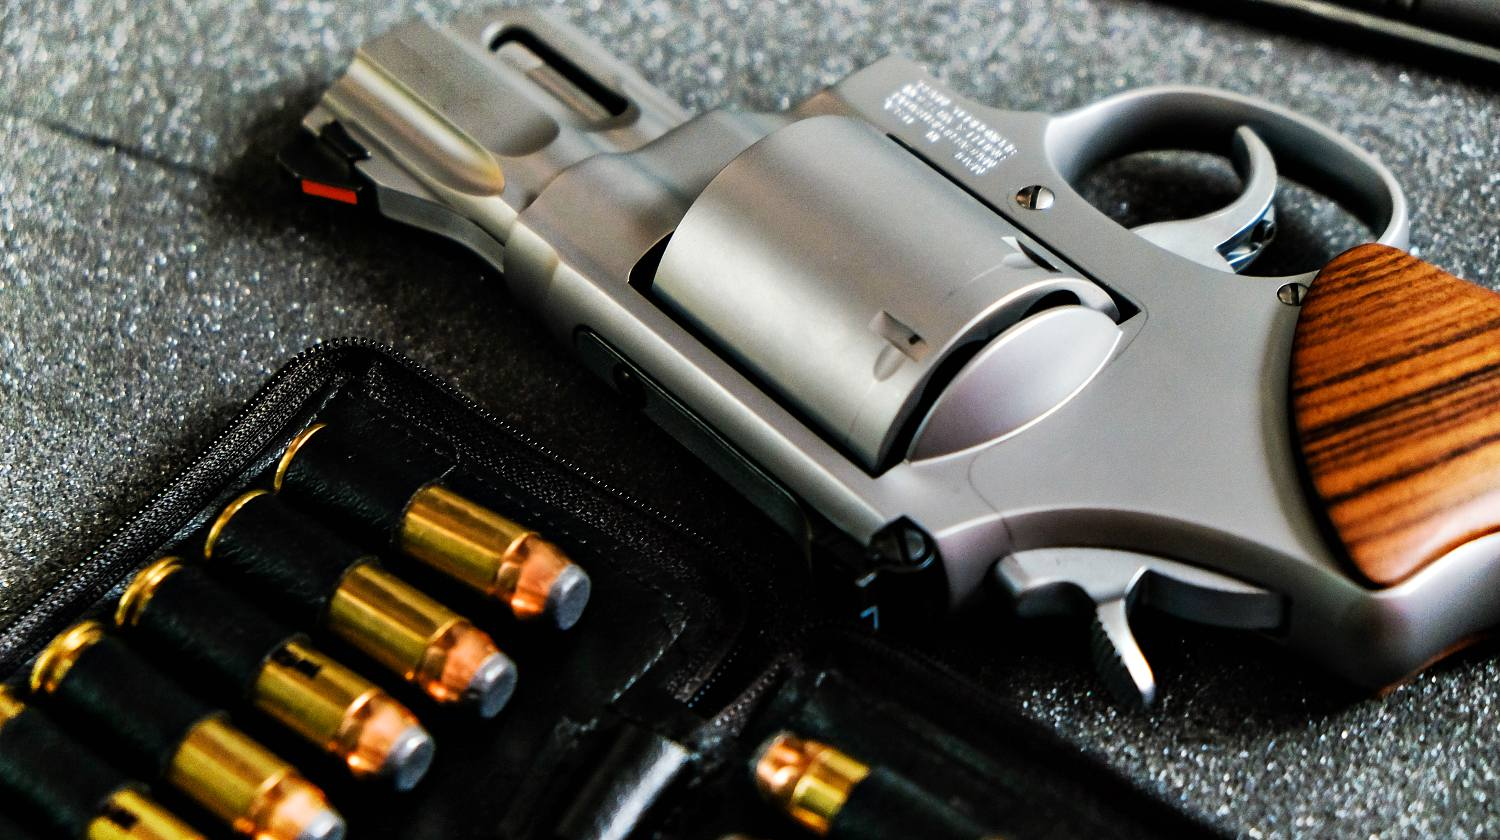 Featured | Metal revolver .44 magnum pistol gun with jacket soft point(JSP) bullet on dark background | The Ultimate Concealed Weapon | Smith And Wesson Model 642